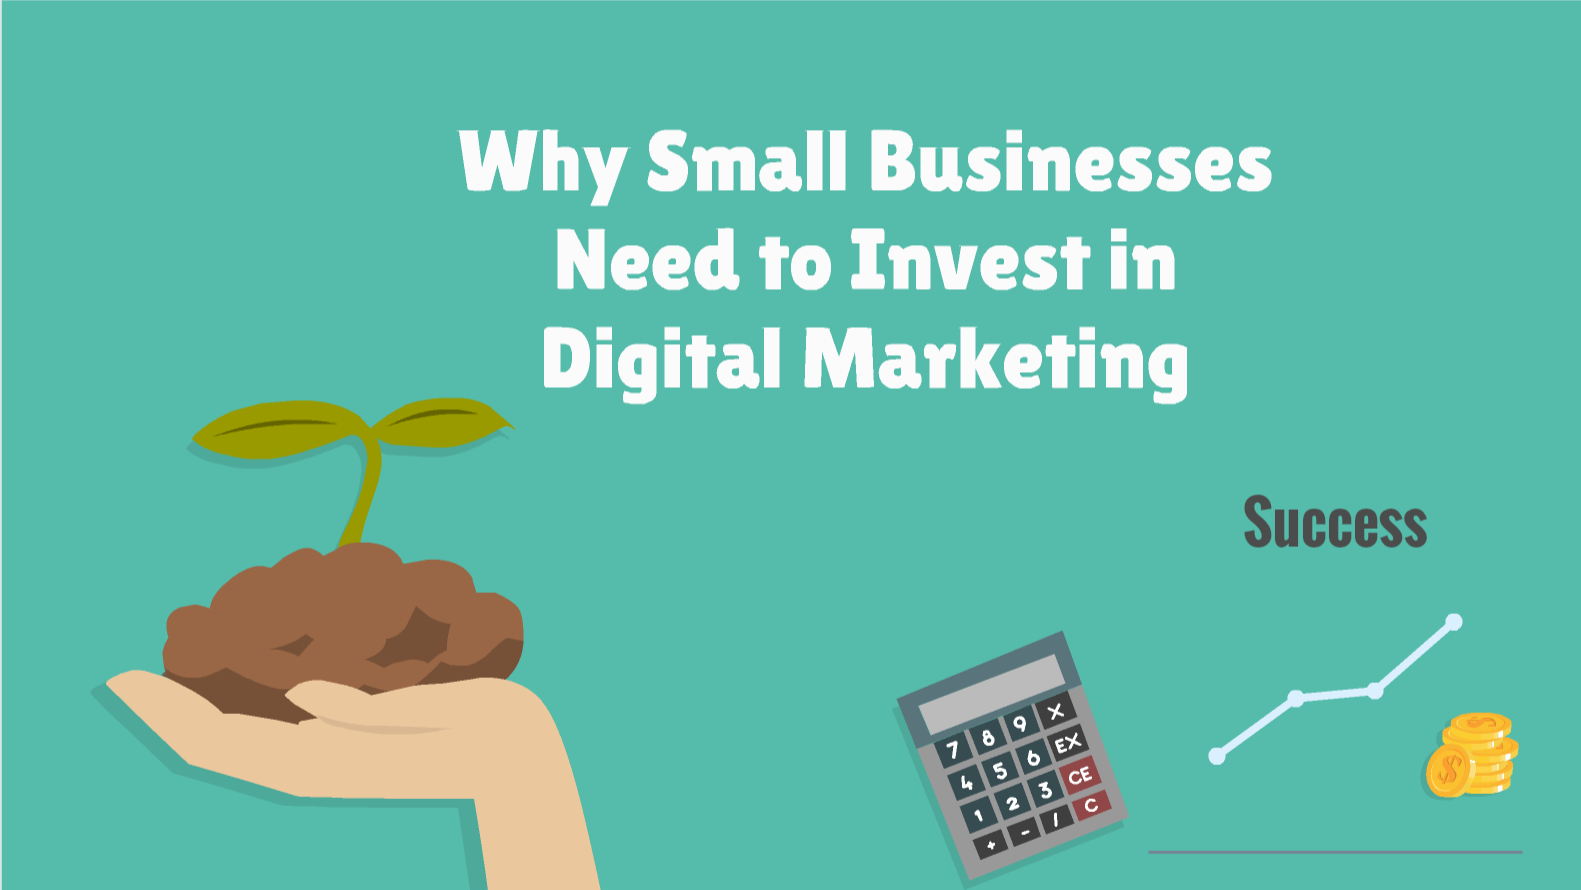 Top Reasons Why Digital Marketing for Small Businesses